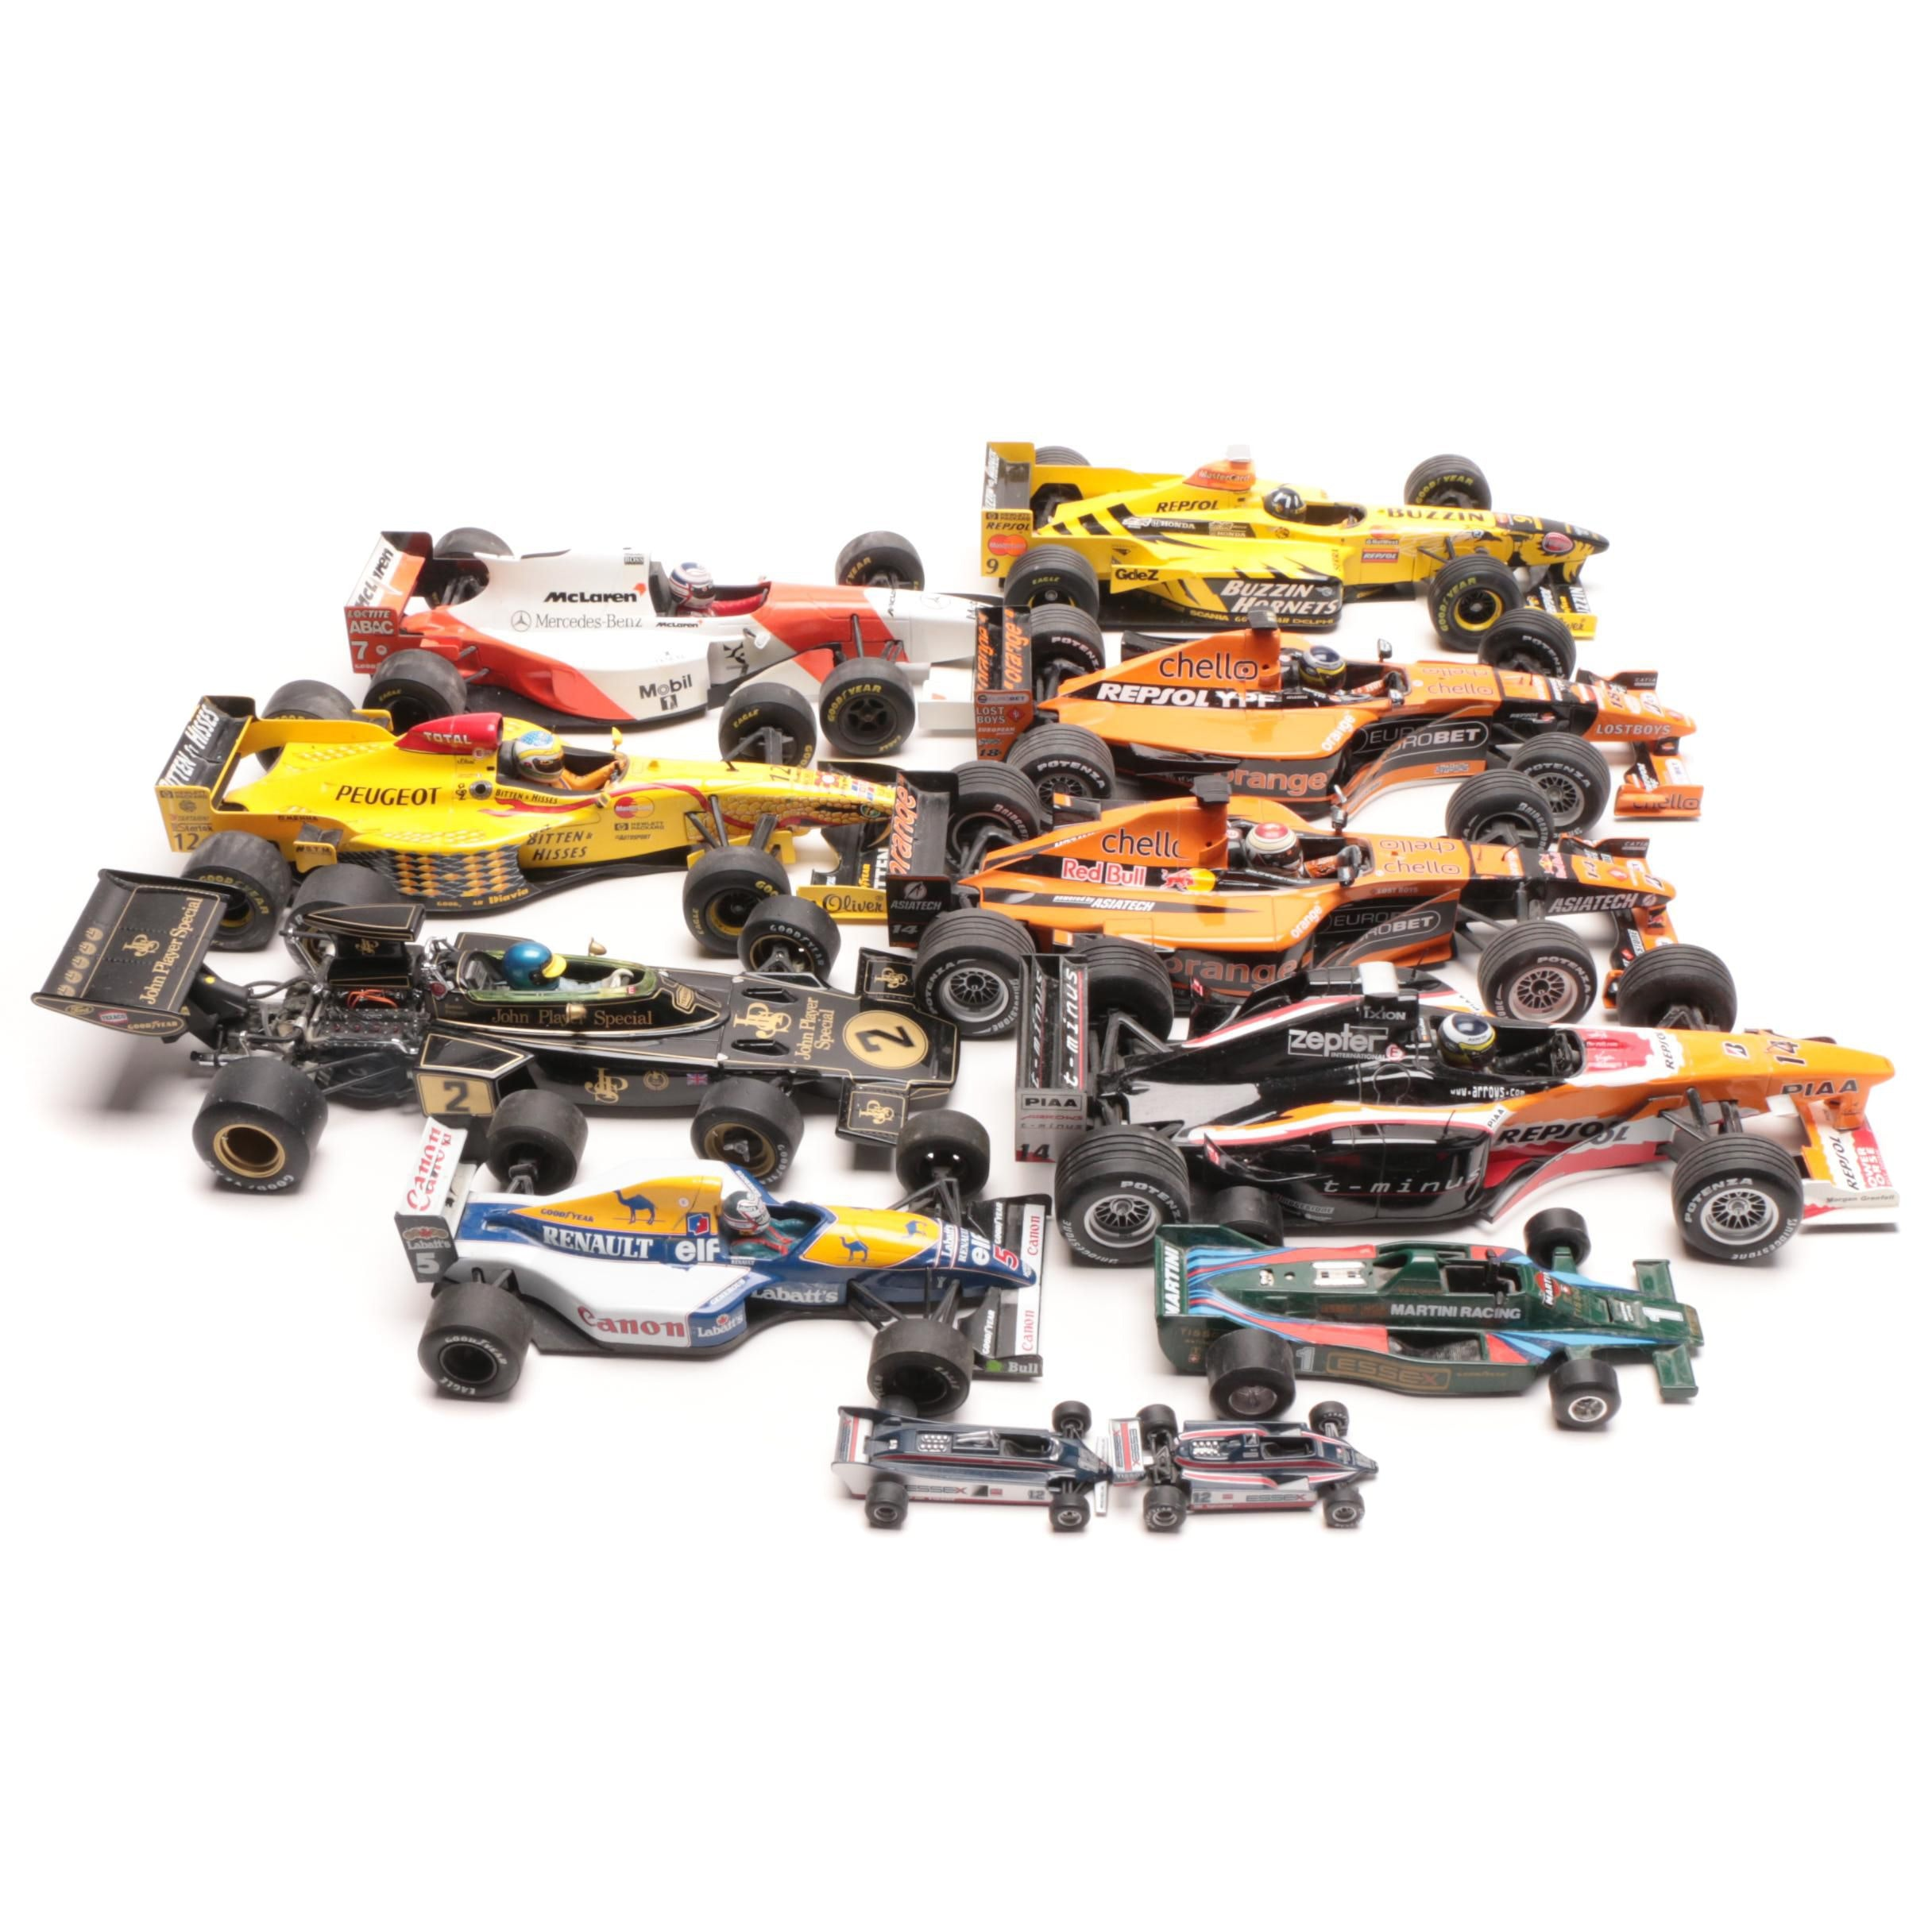 Indy Diecast Race Cars Including Grand Prix, Paul's Model Art and More